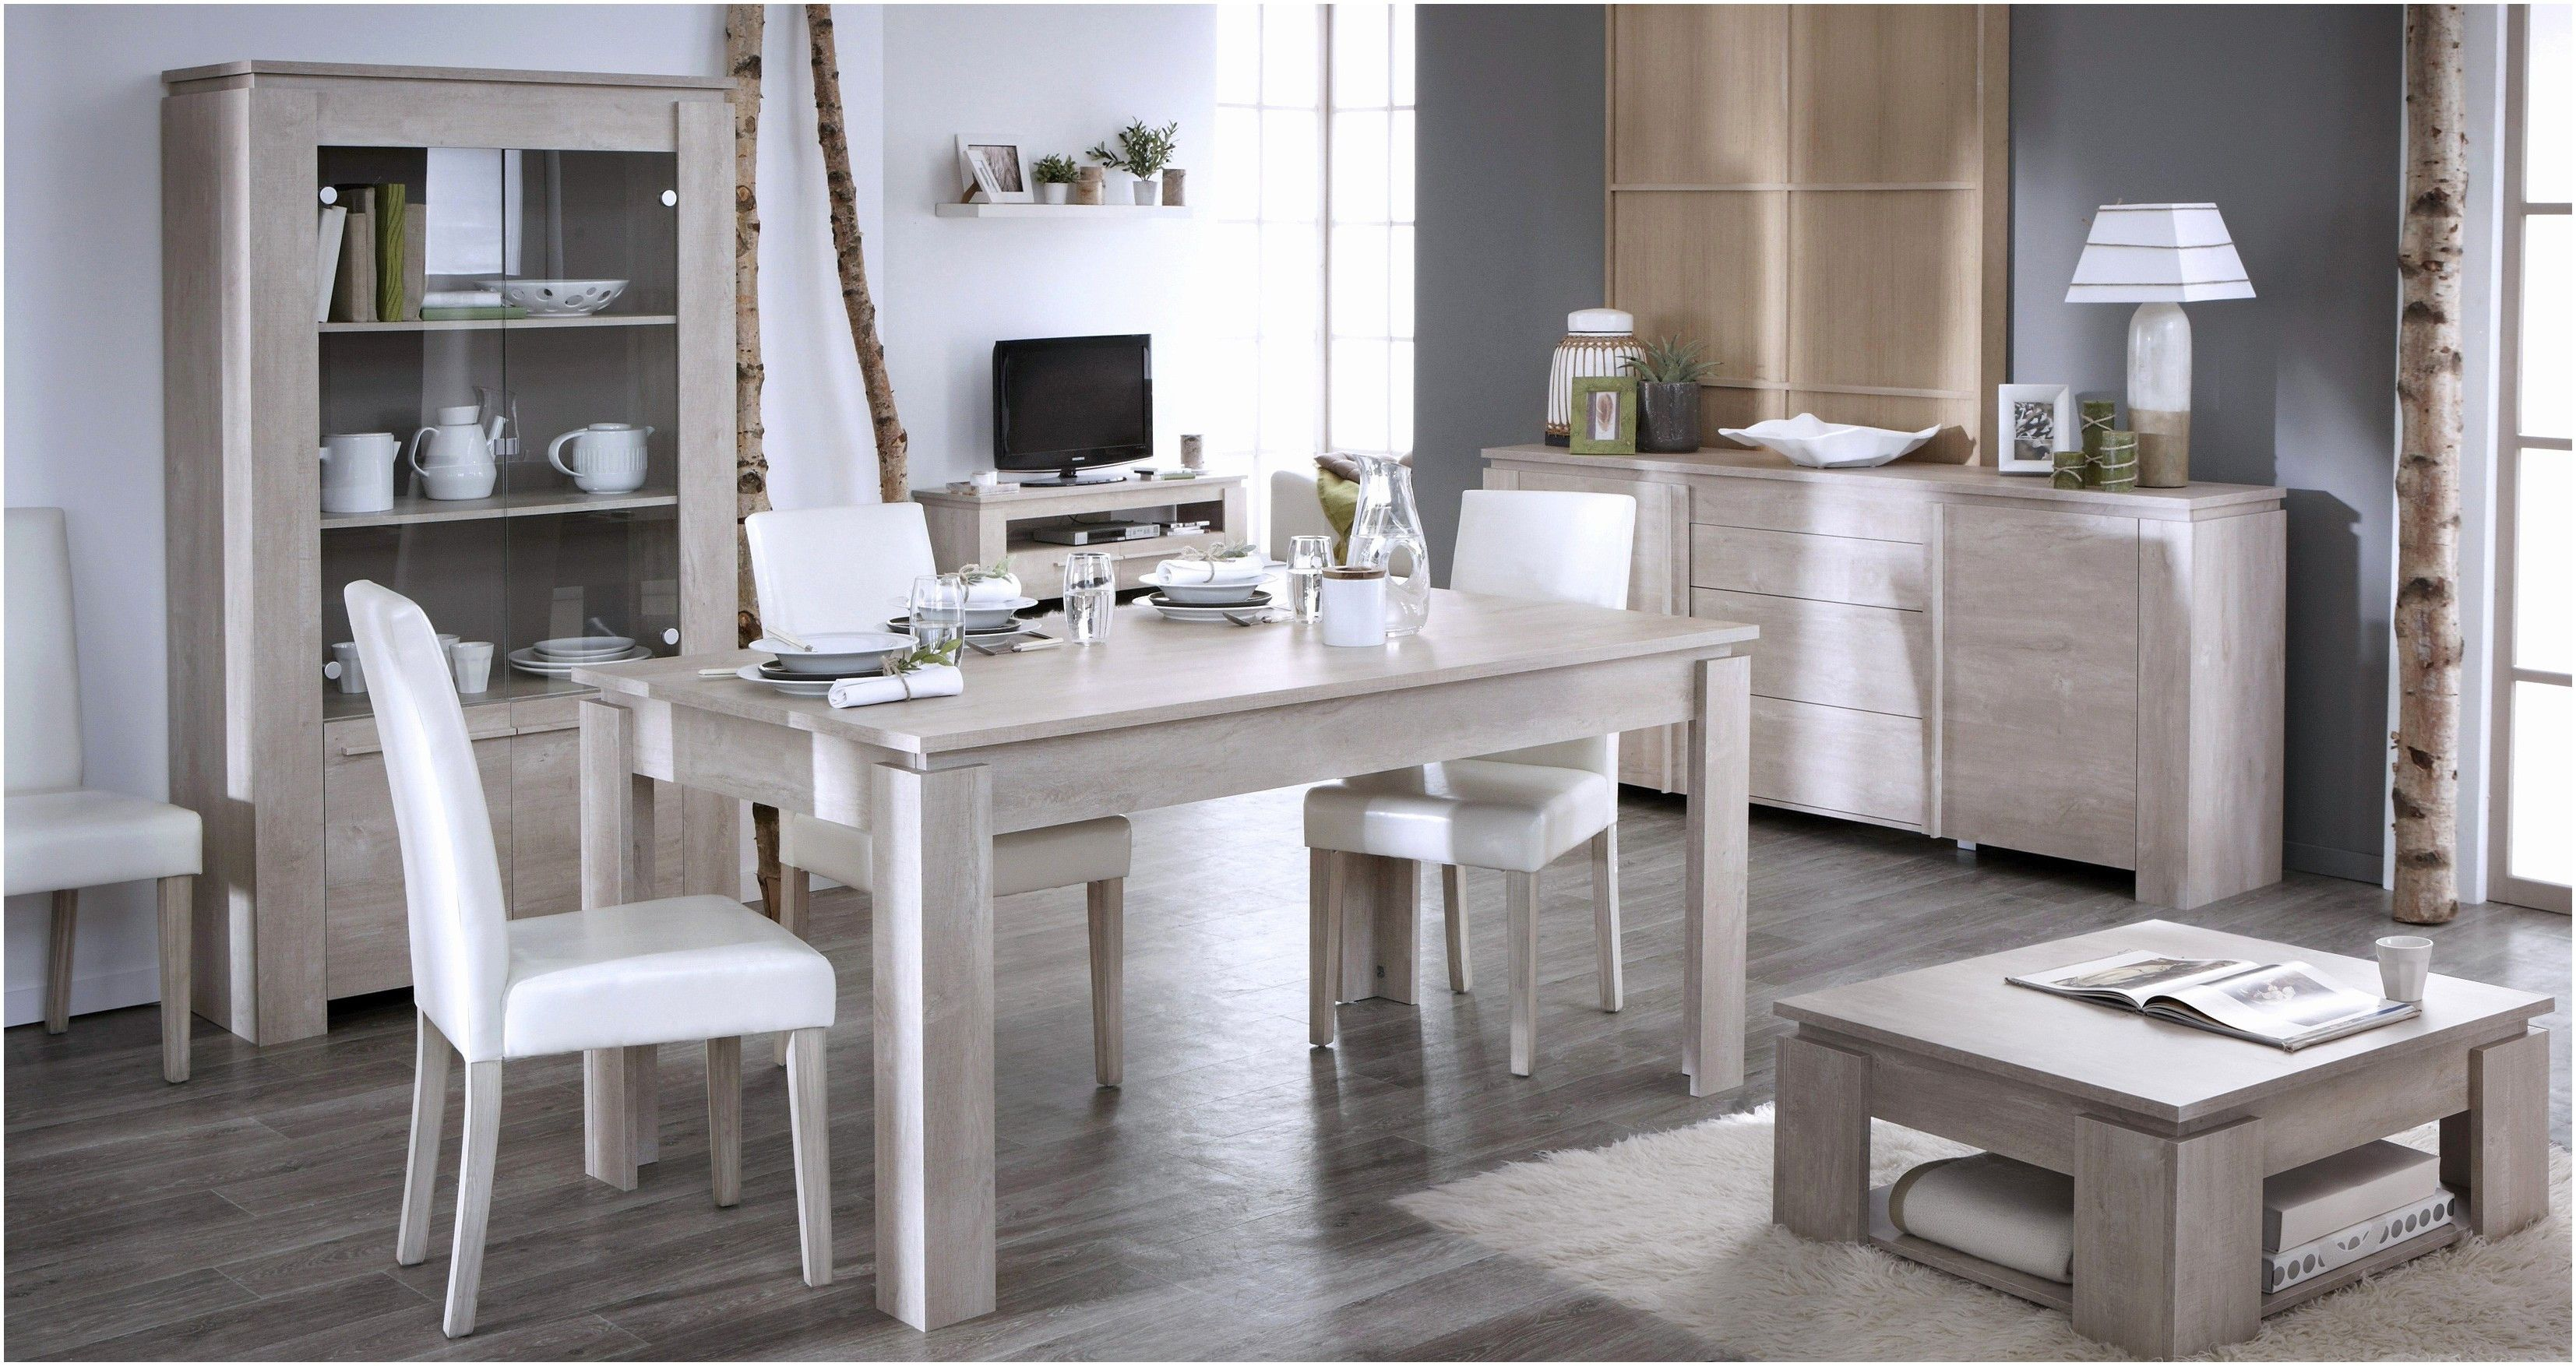 Beautiful Conforama Montage Meuble Home Home Decor Dining Table